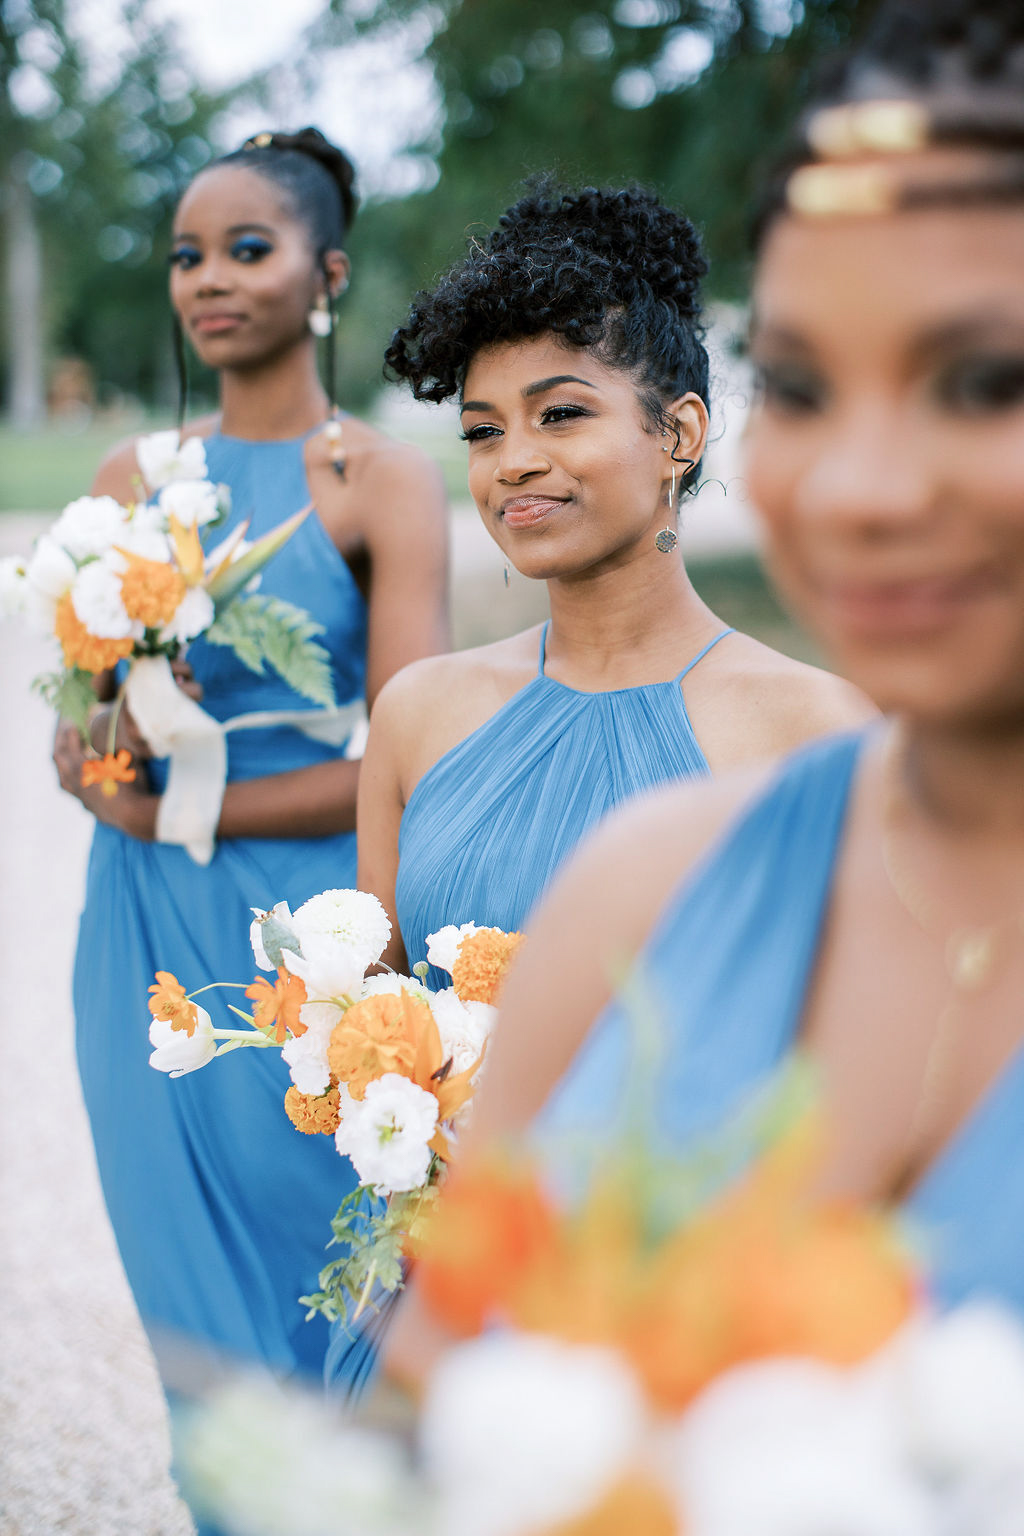 bridesmaids in blue dresses holding orange and white flowers